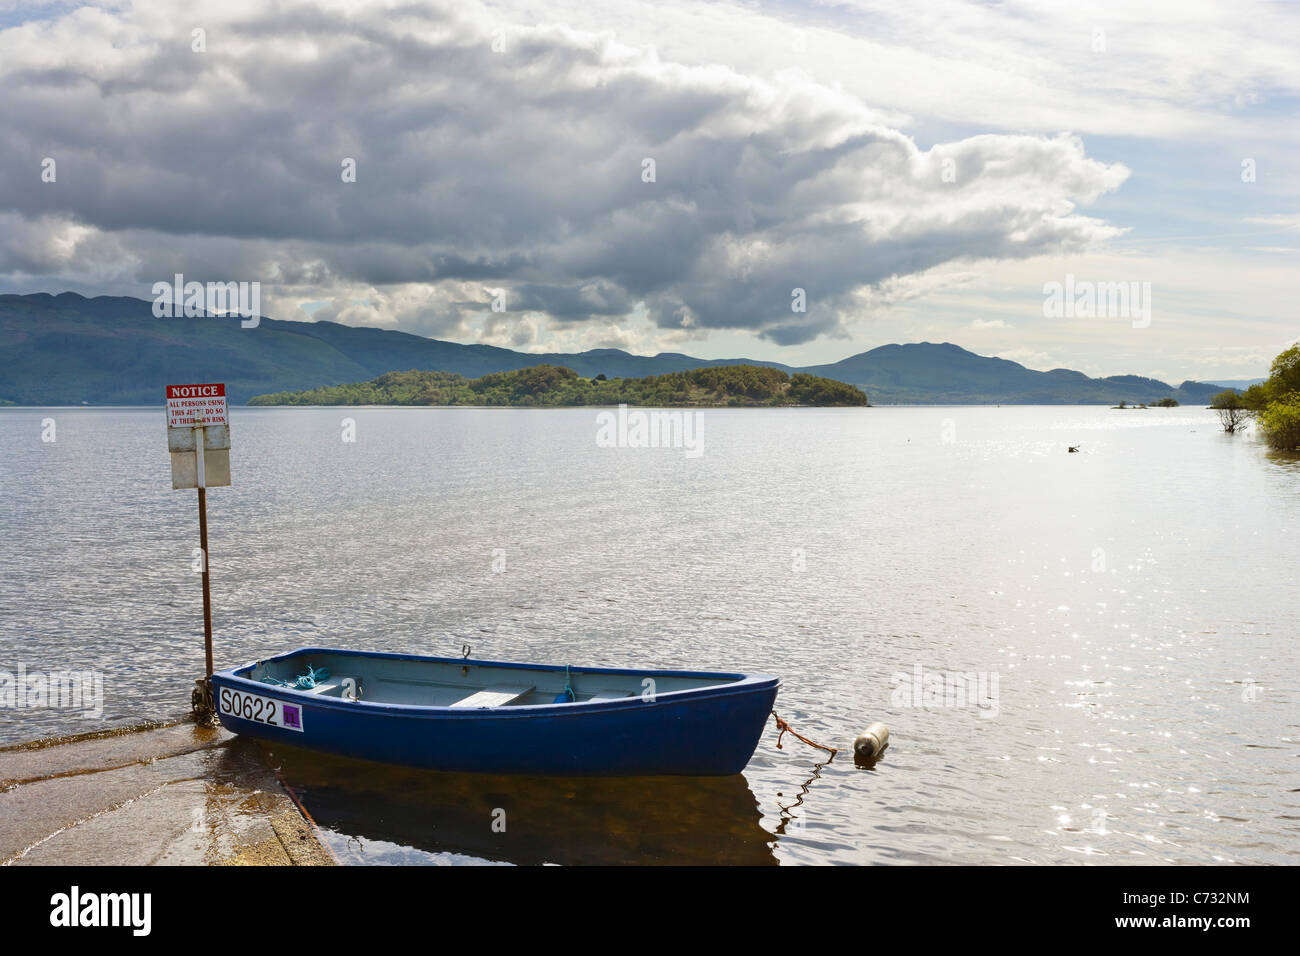 View over the loch from Luss on the west bank of Loch Lomond, Argyll and Bute, Scotland, UK - Stock Image